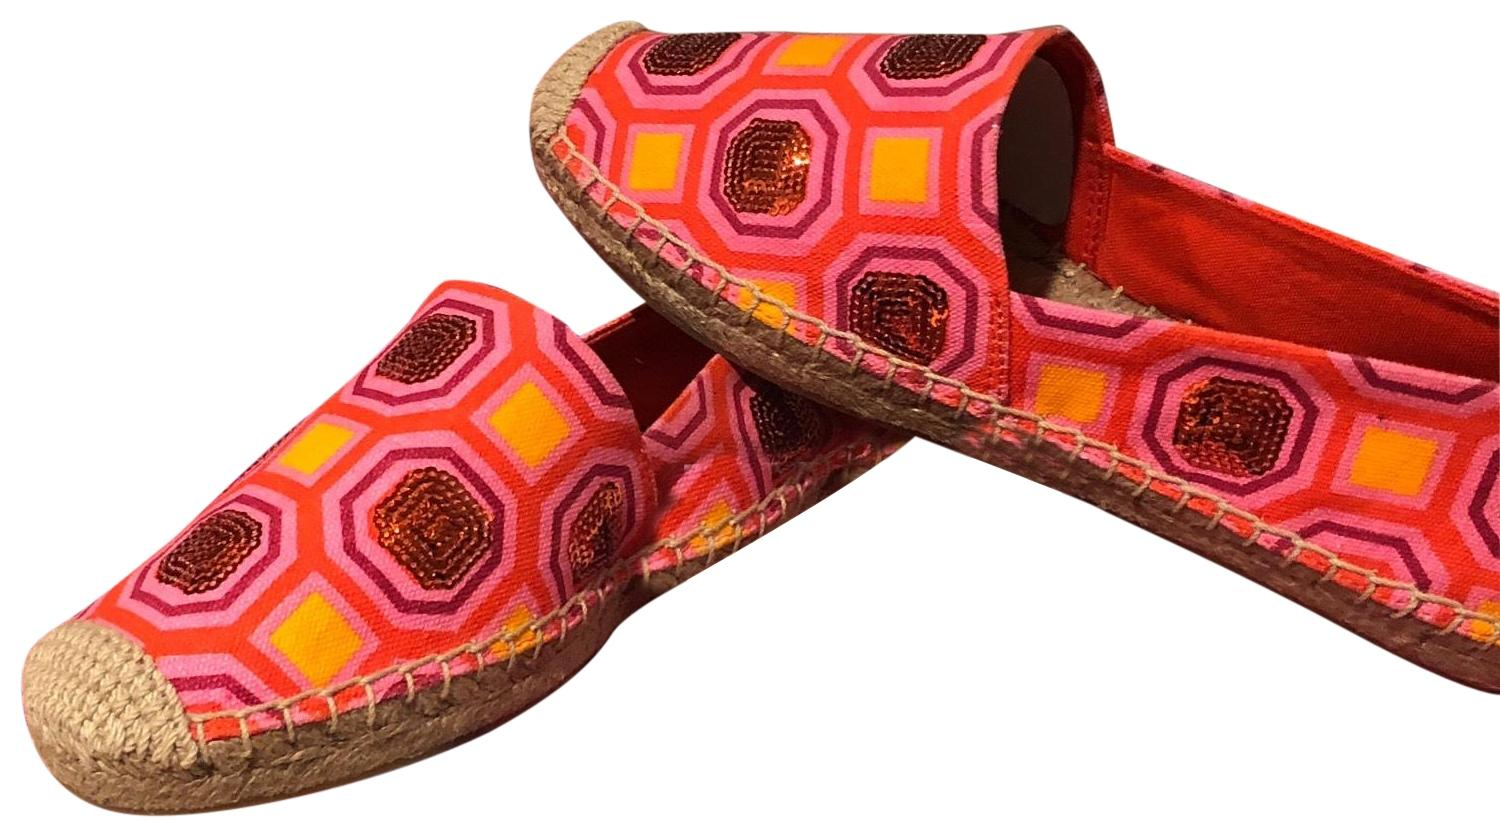 add086545ce6c Tory Burch Pink Orange Embellished Espadrille Pink Orange Flats Flats Flats  Size US 7.5 Regular (M